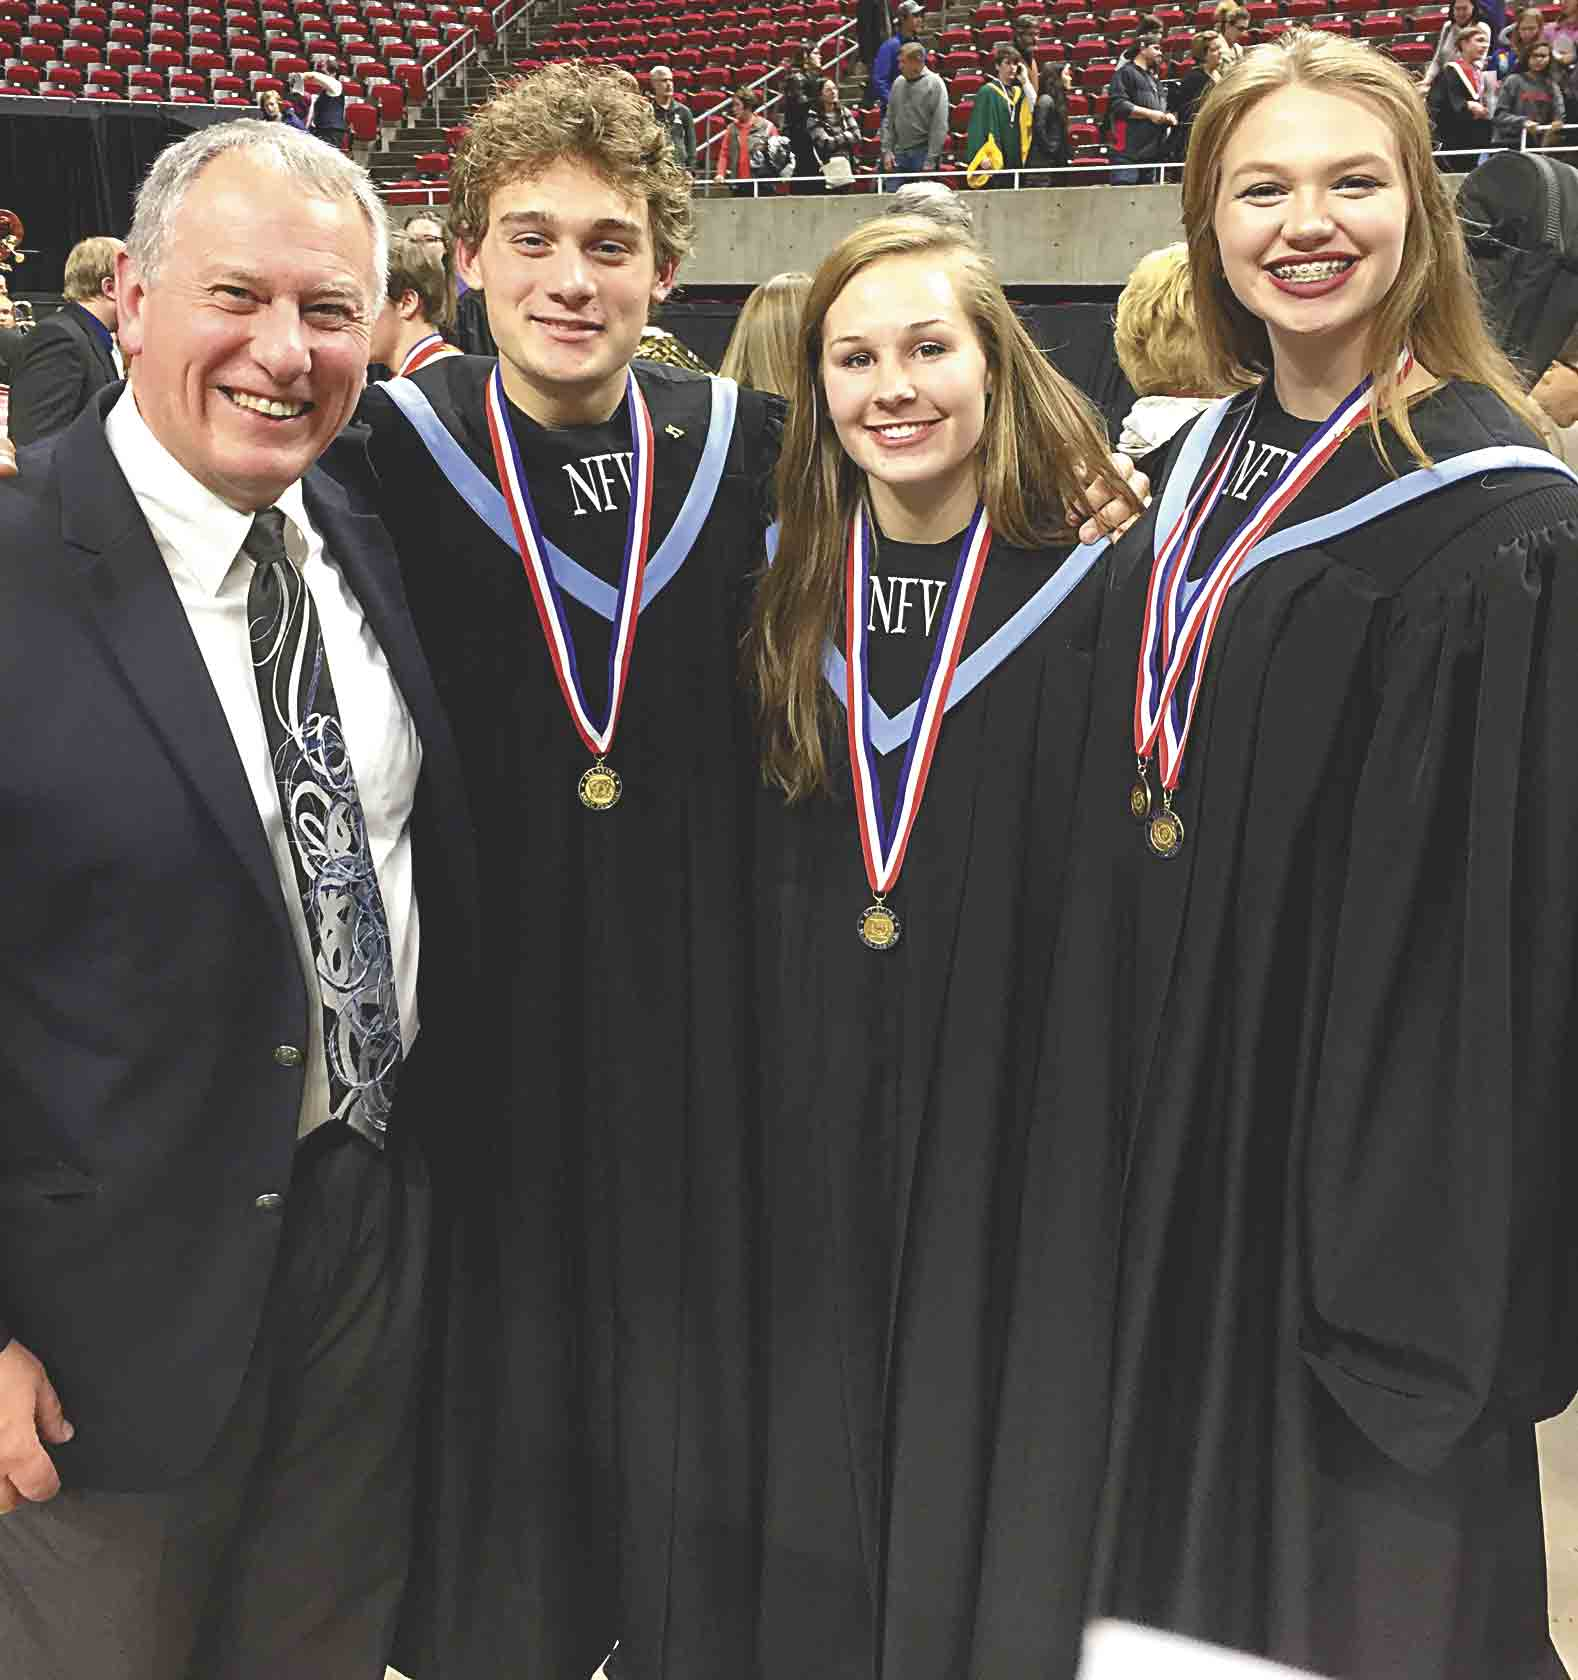 Three North Fayette Valley students participated in the 601-member All-State Choir at the annual All-State Music Festival Thursday-Saturday, Nov. 16-18, in Ames. It is the first time since 1991 that North Fayette and now North Fayette Valley has had three students performing in the choir....